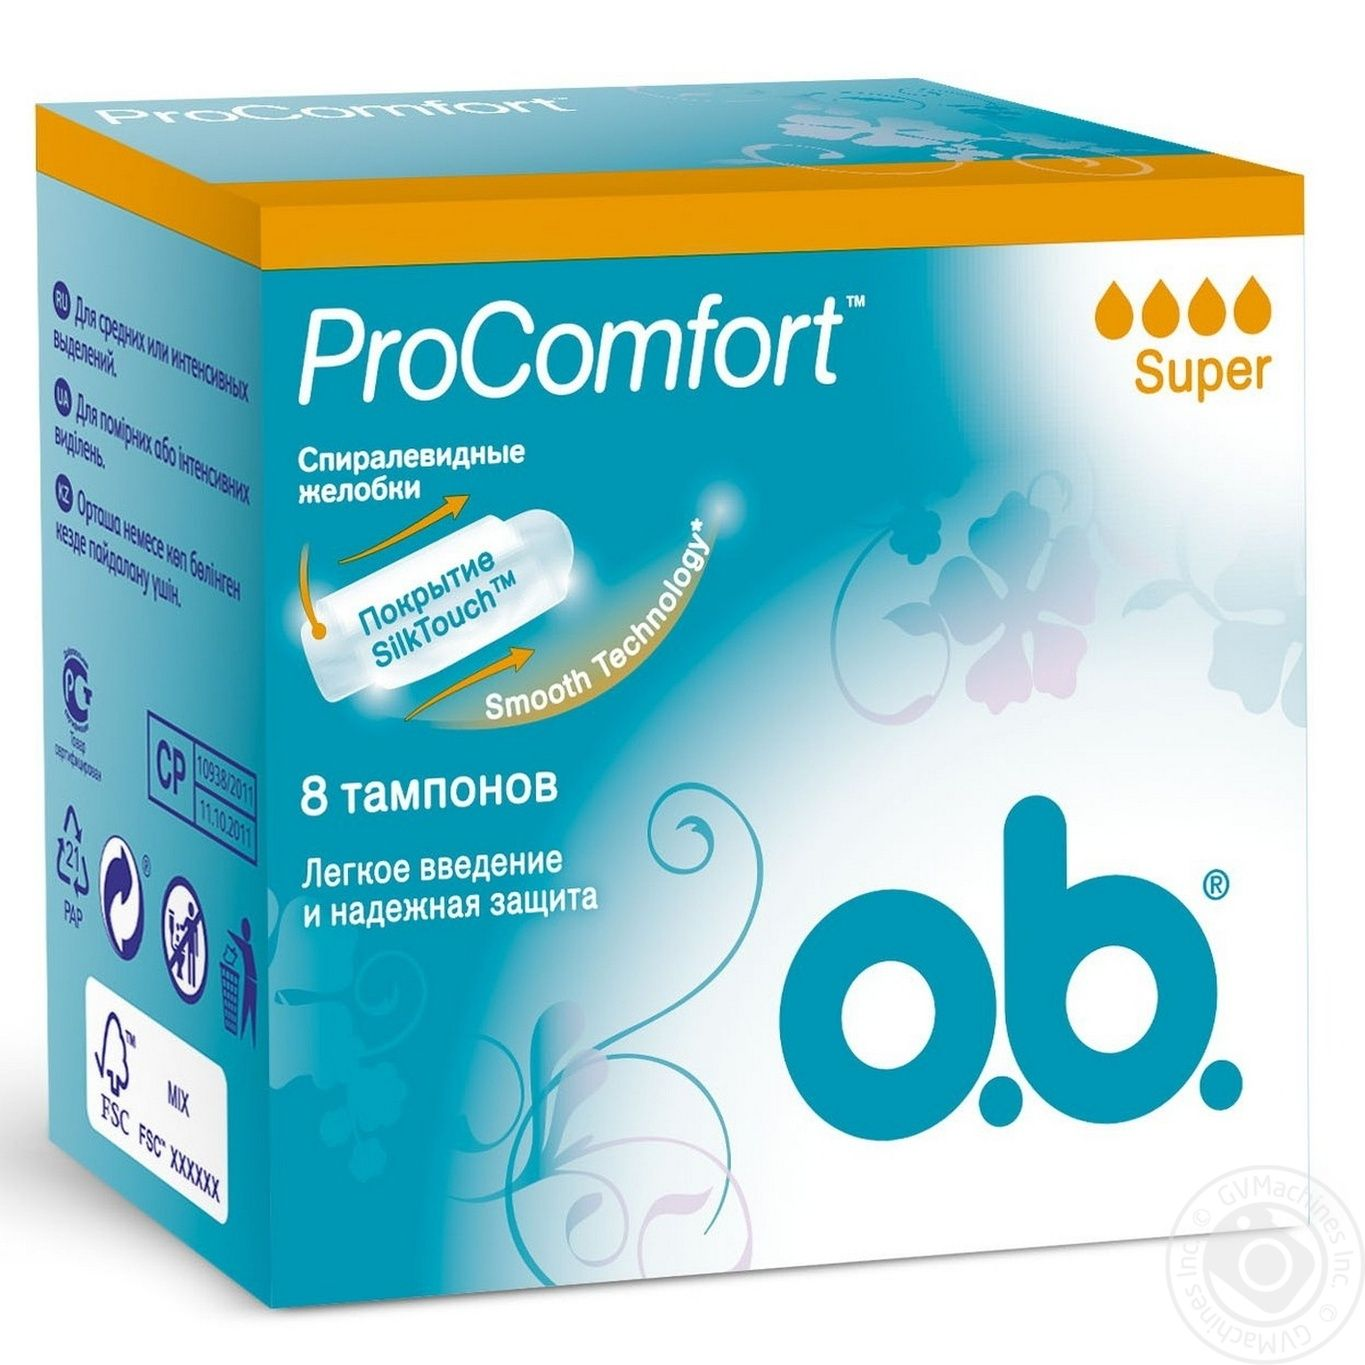 Tampons Ob Procomfort For Women Normal Plus 8pcs Hygiene